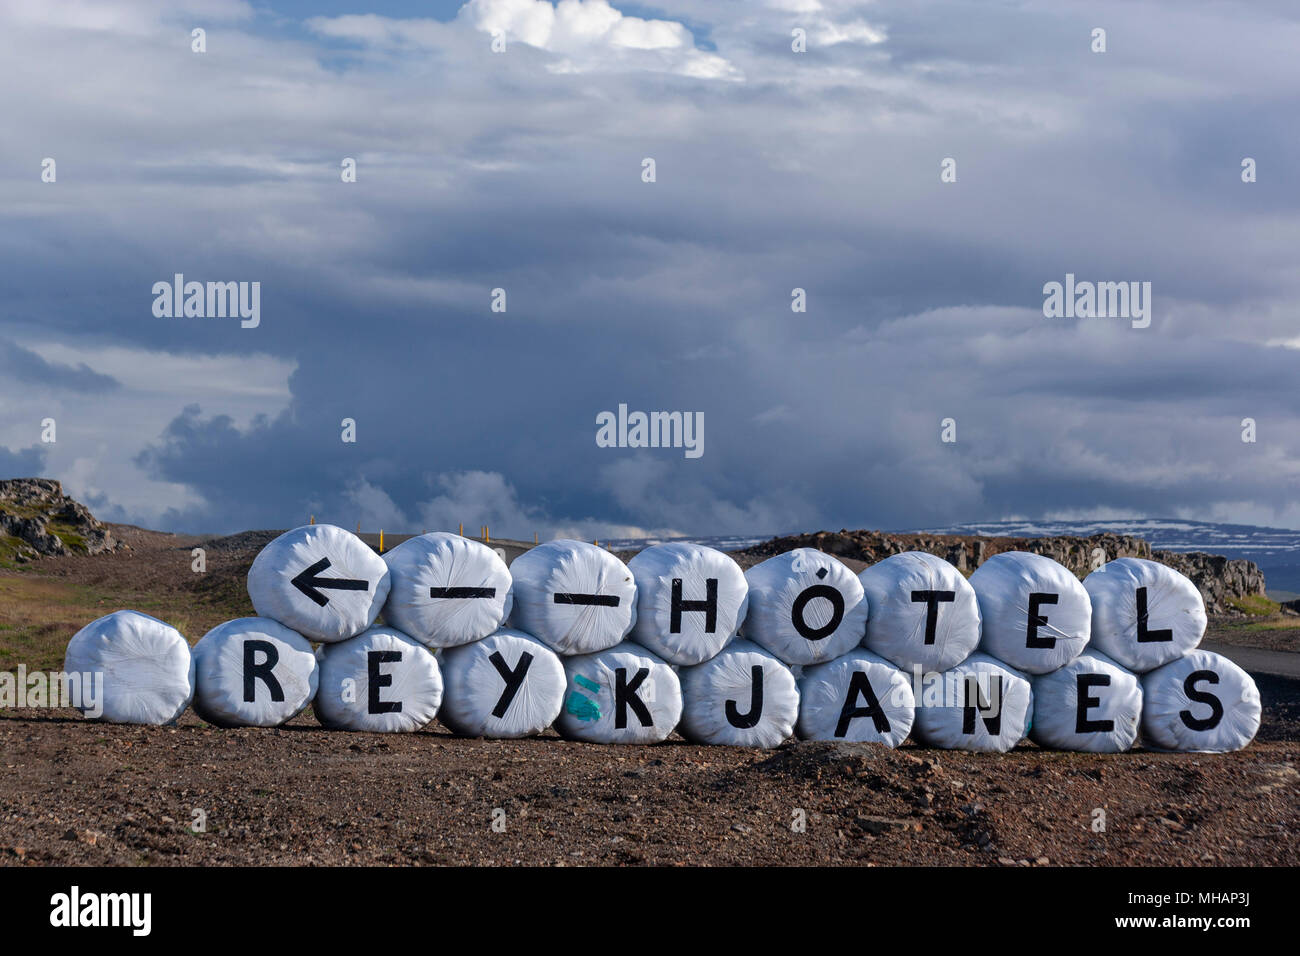 To Hotel Reykjanes sign in bwhite bales, with Hot Springs,  located on the Reykjanes peninsula in Isafjardardjup by the main road, Iceland Stock Photo